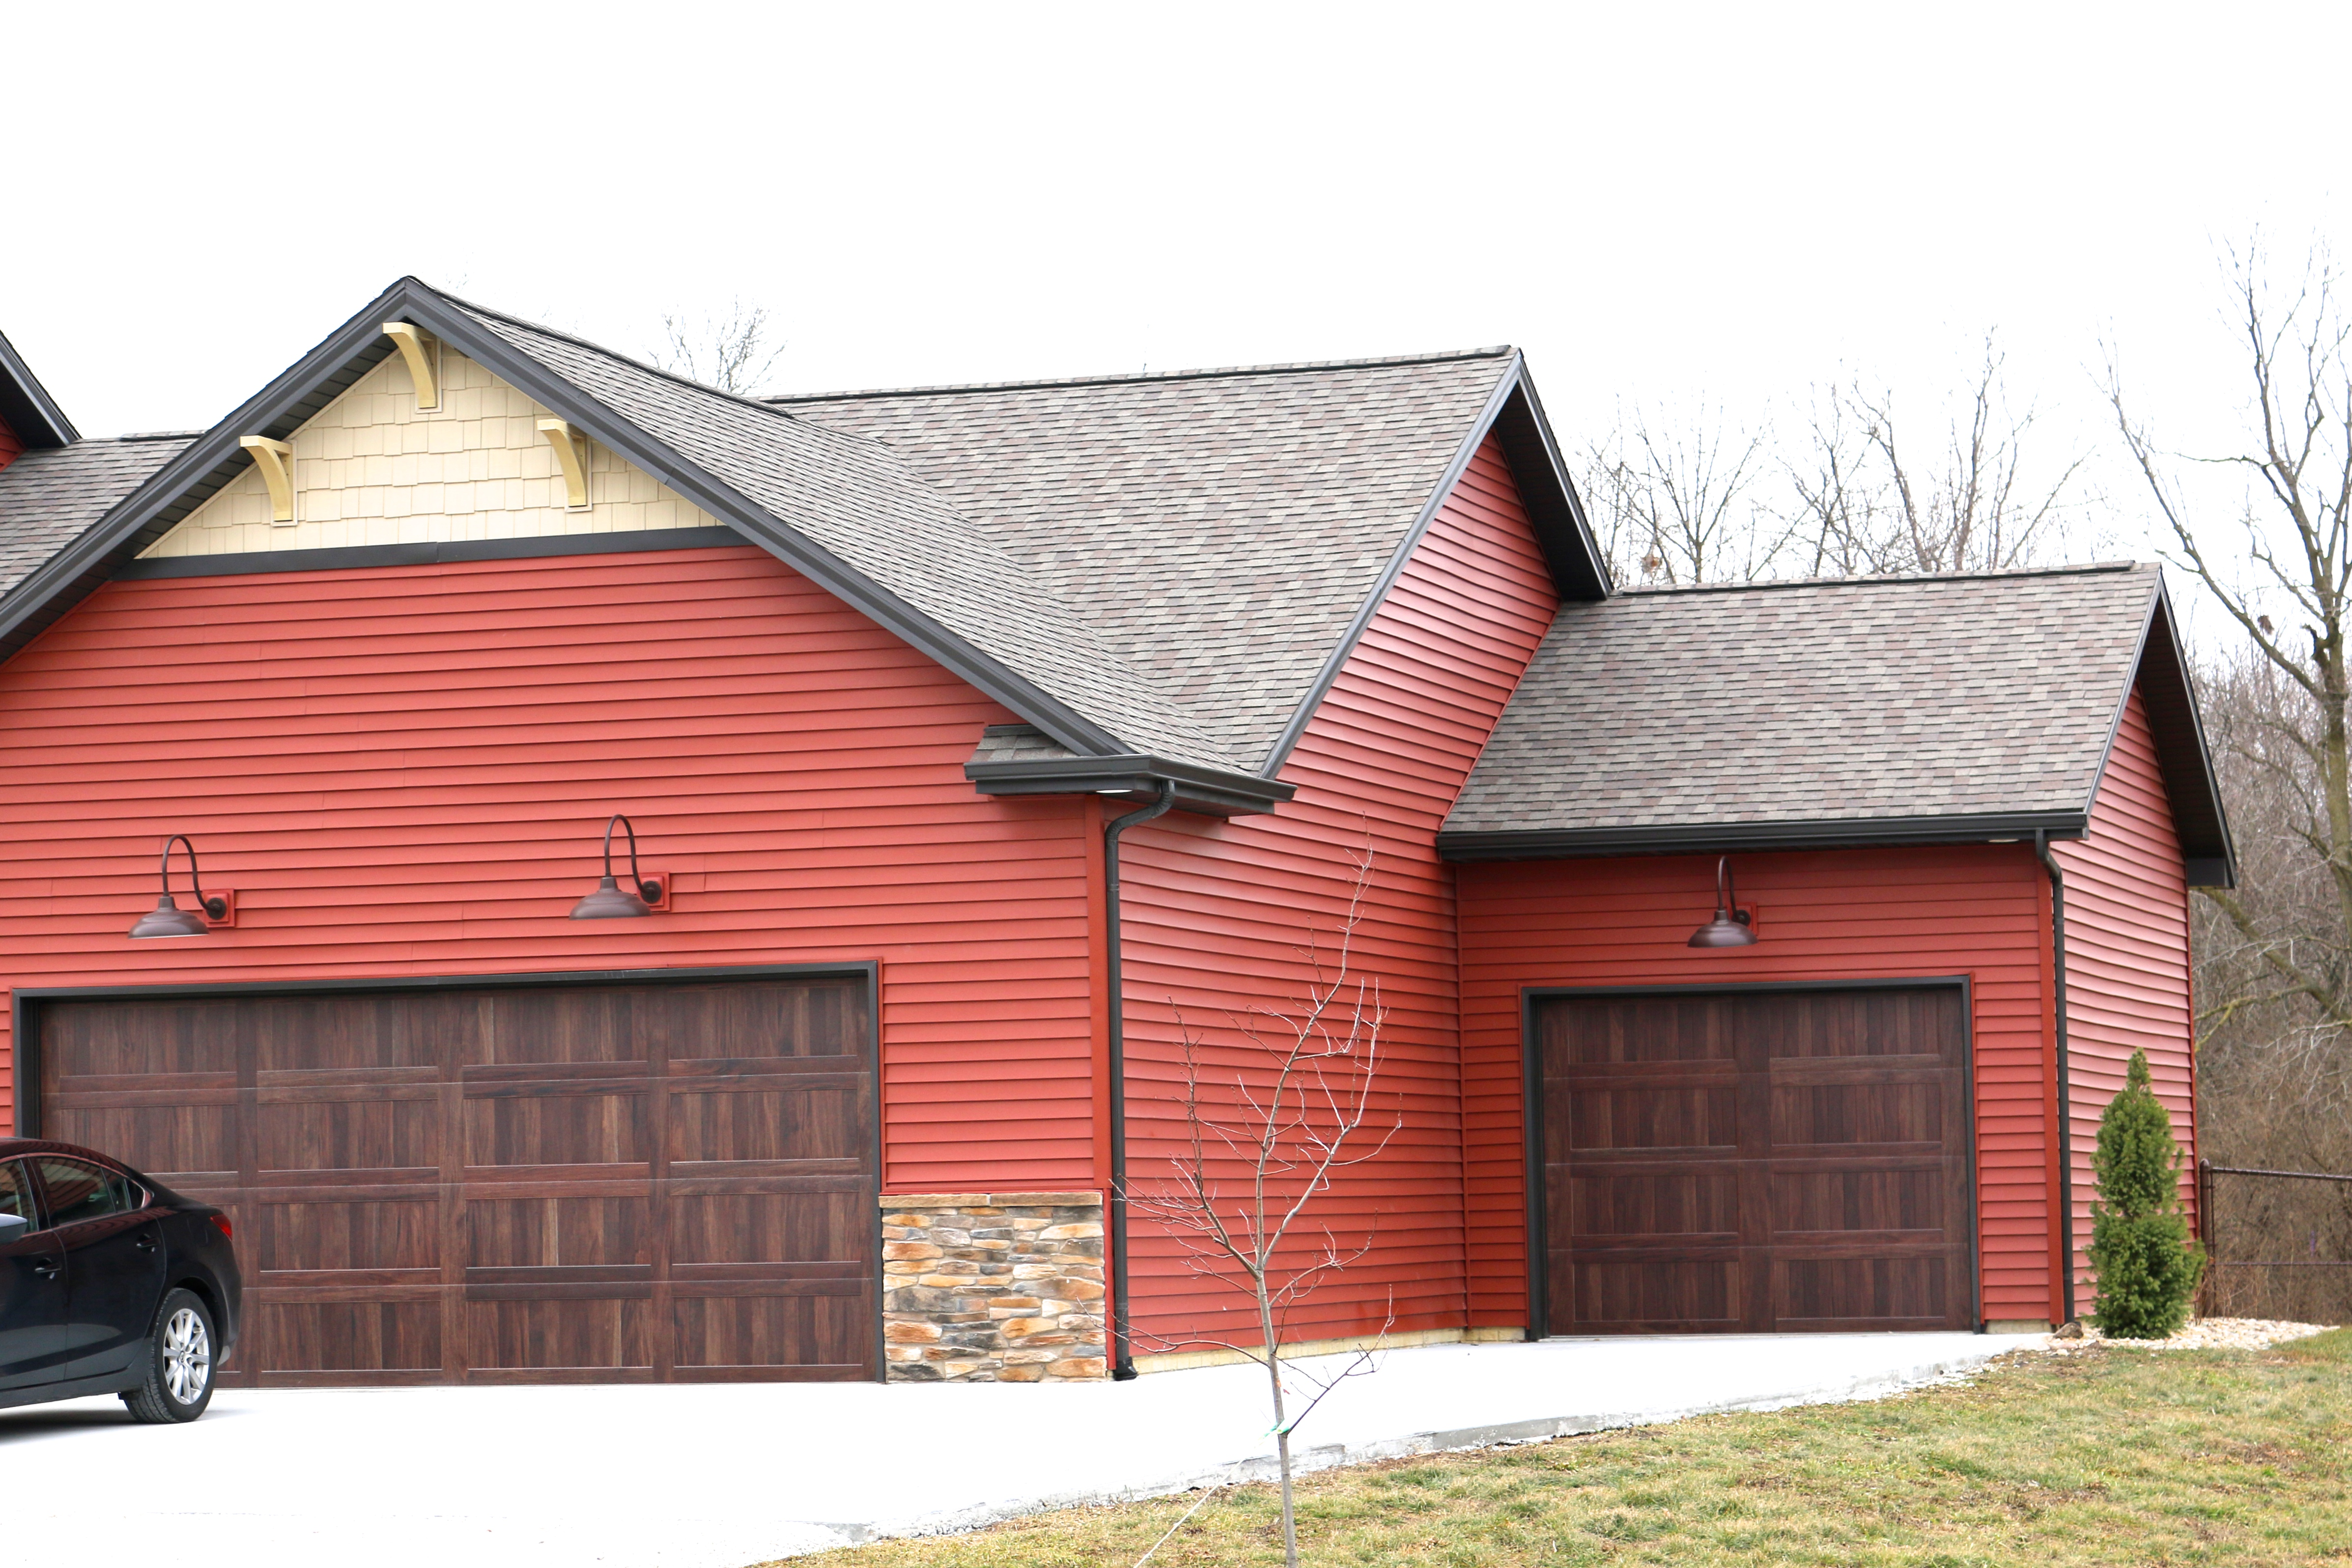 Mahoghany Garage Doors With Red Siding And Weatherered